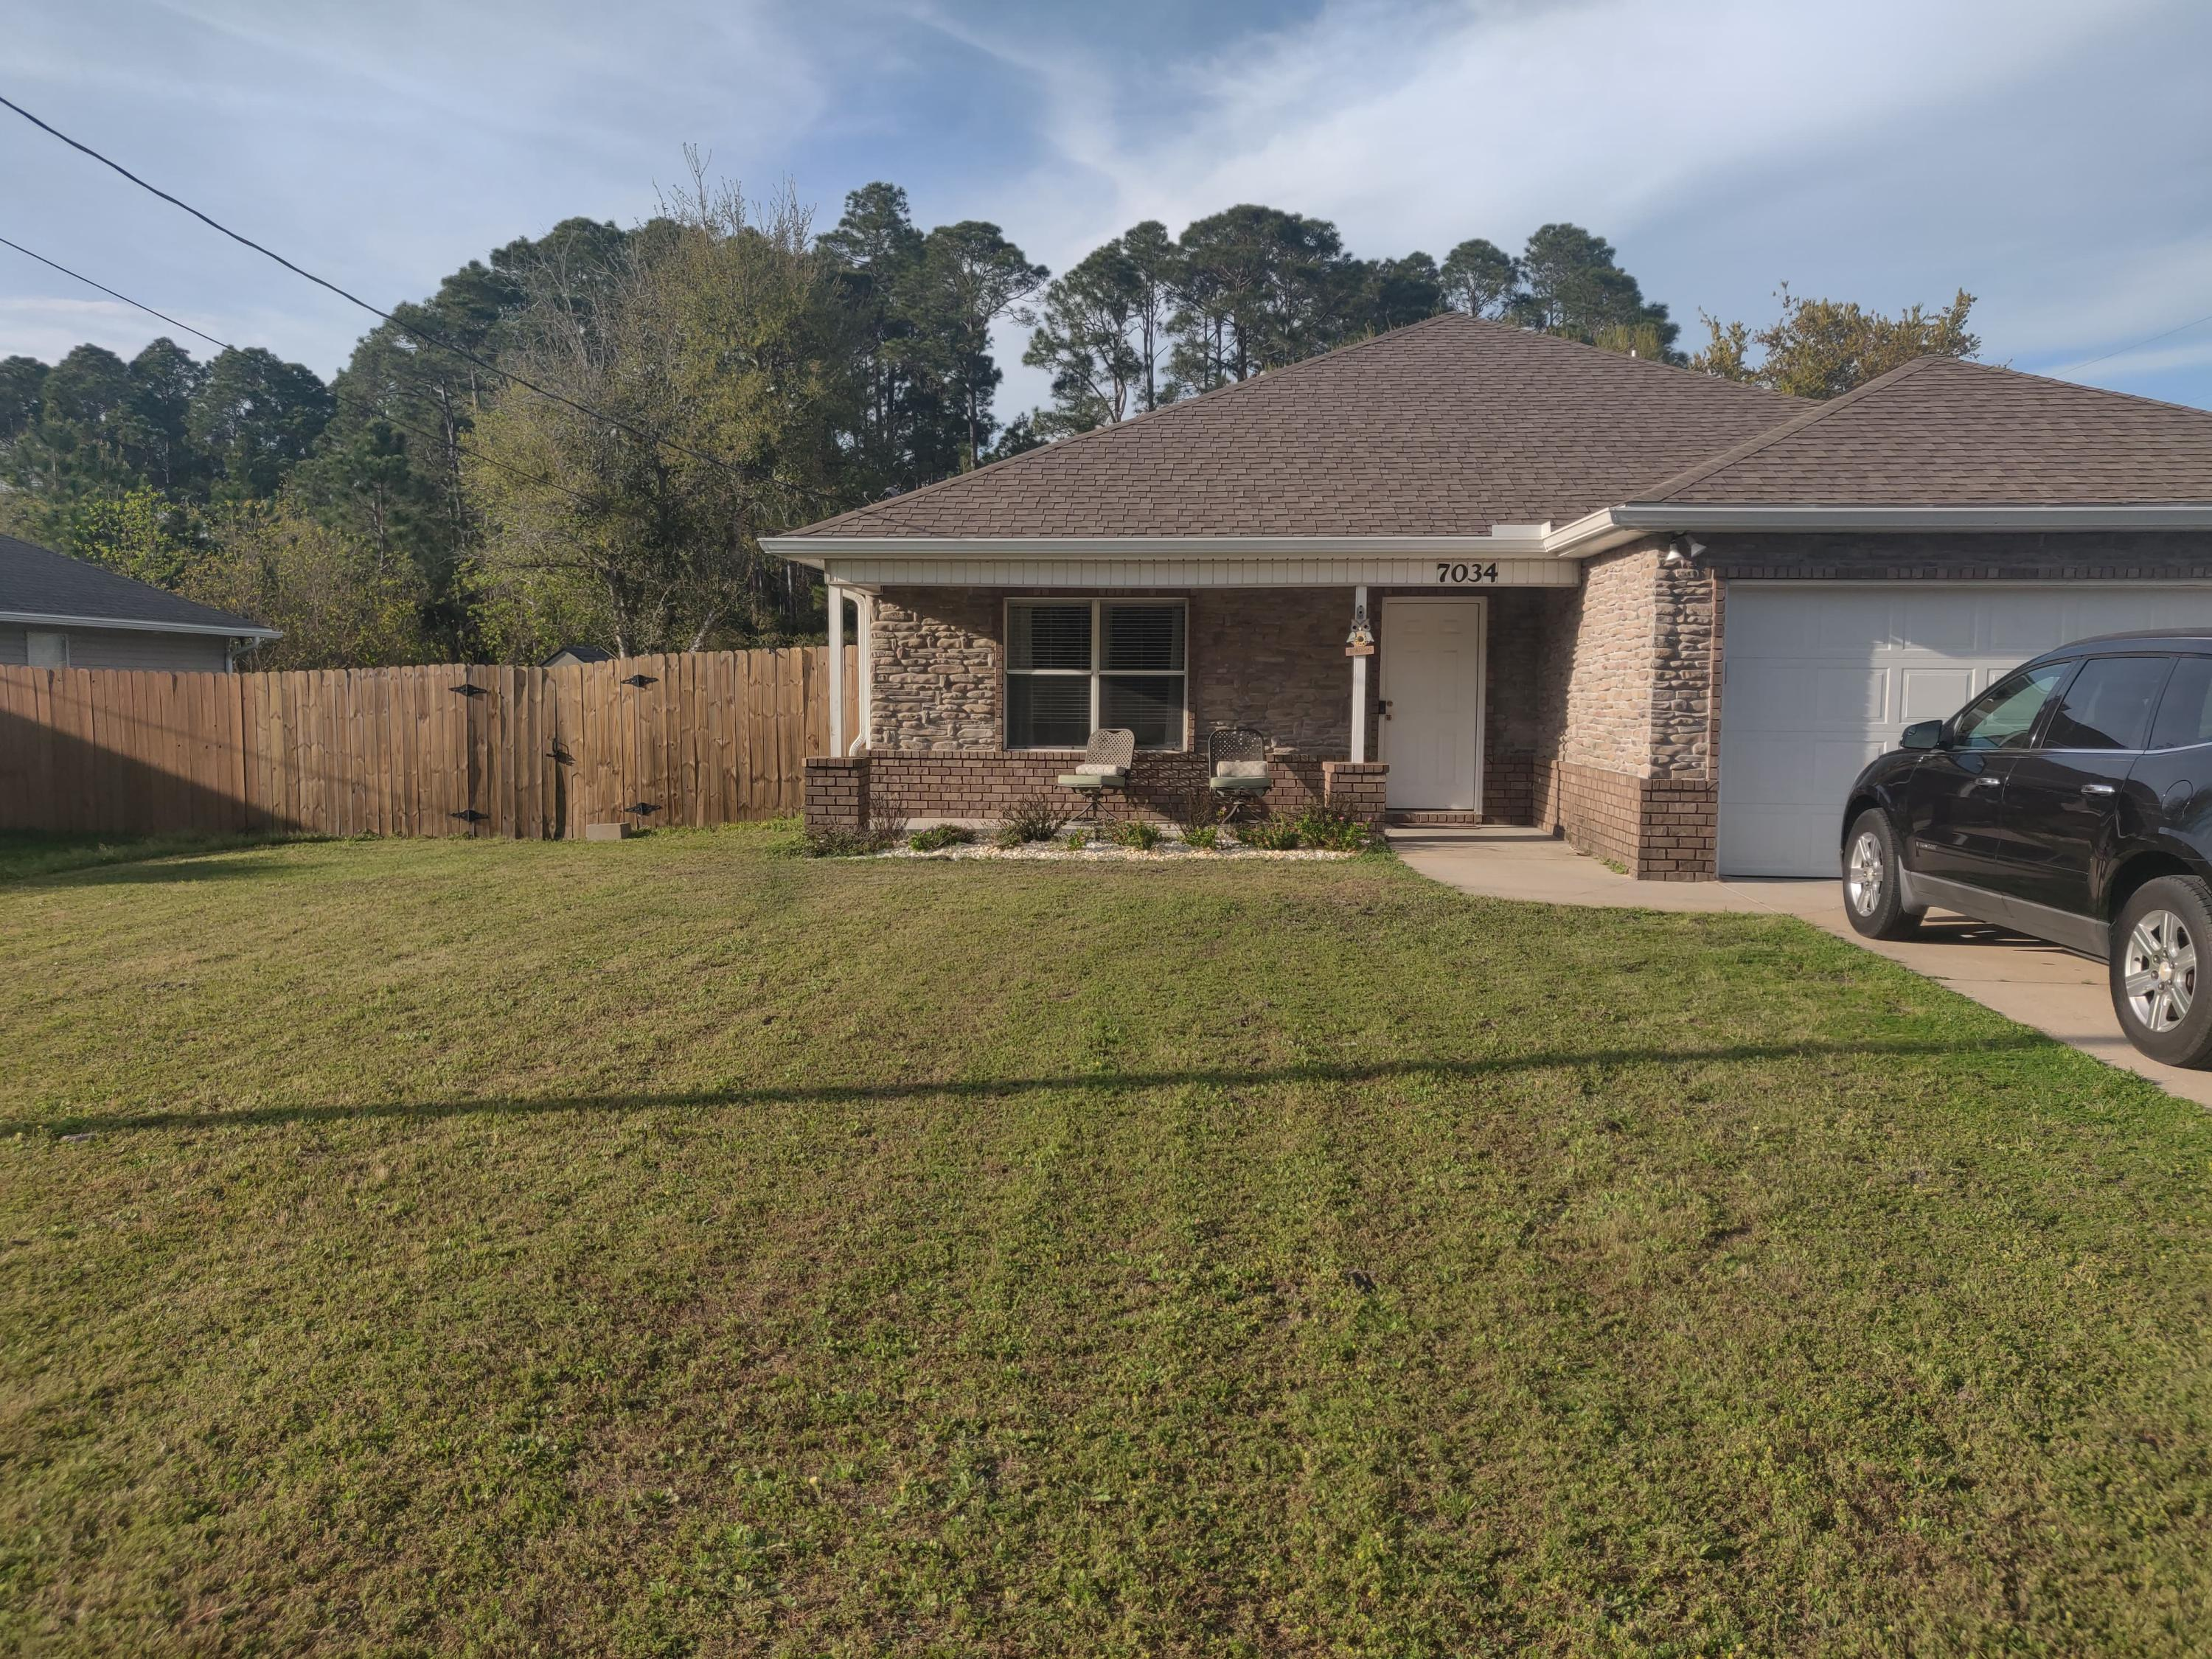 Photo of home for sale at 7034 Webster, Navarre FL